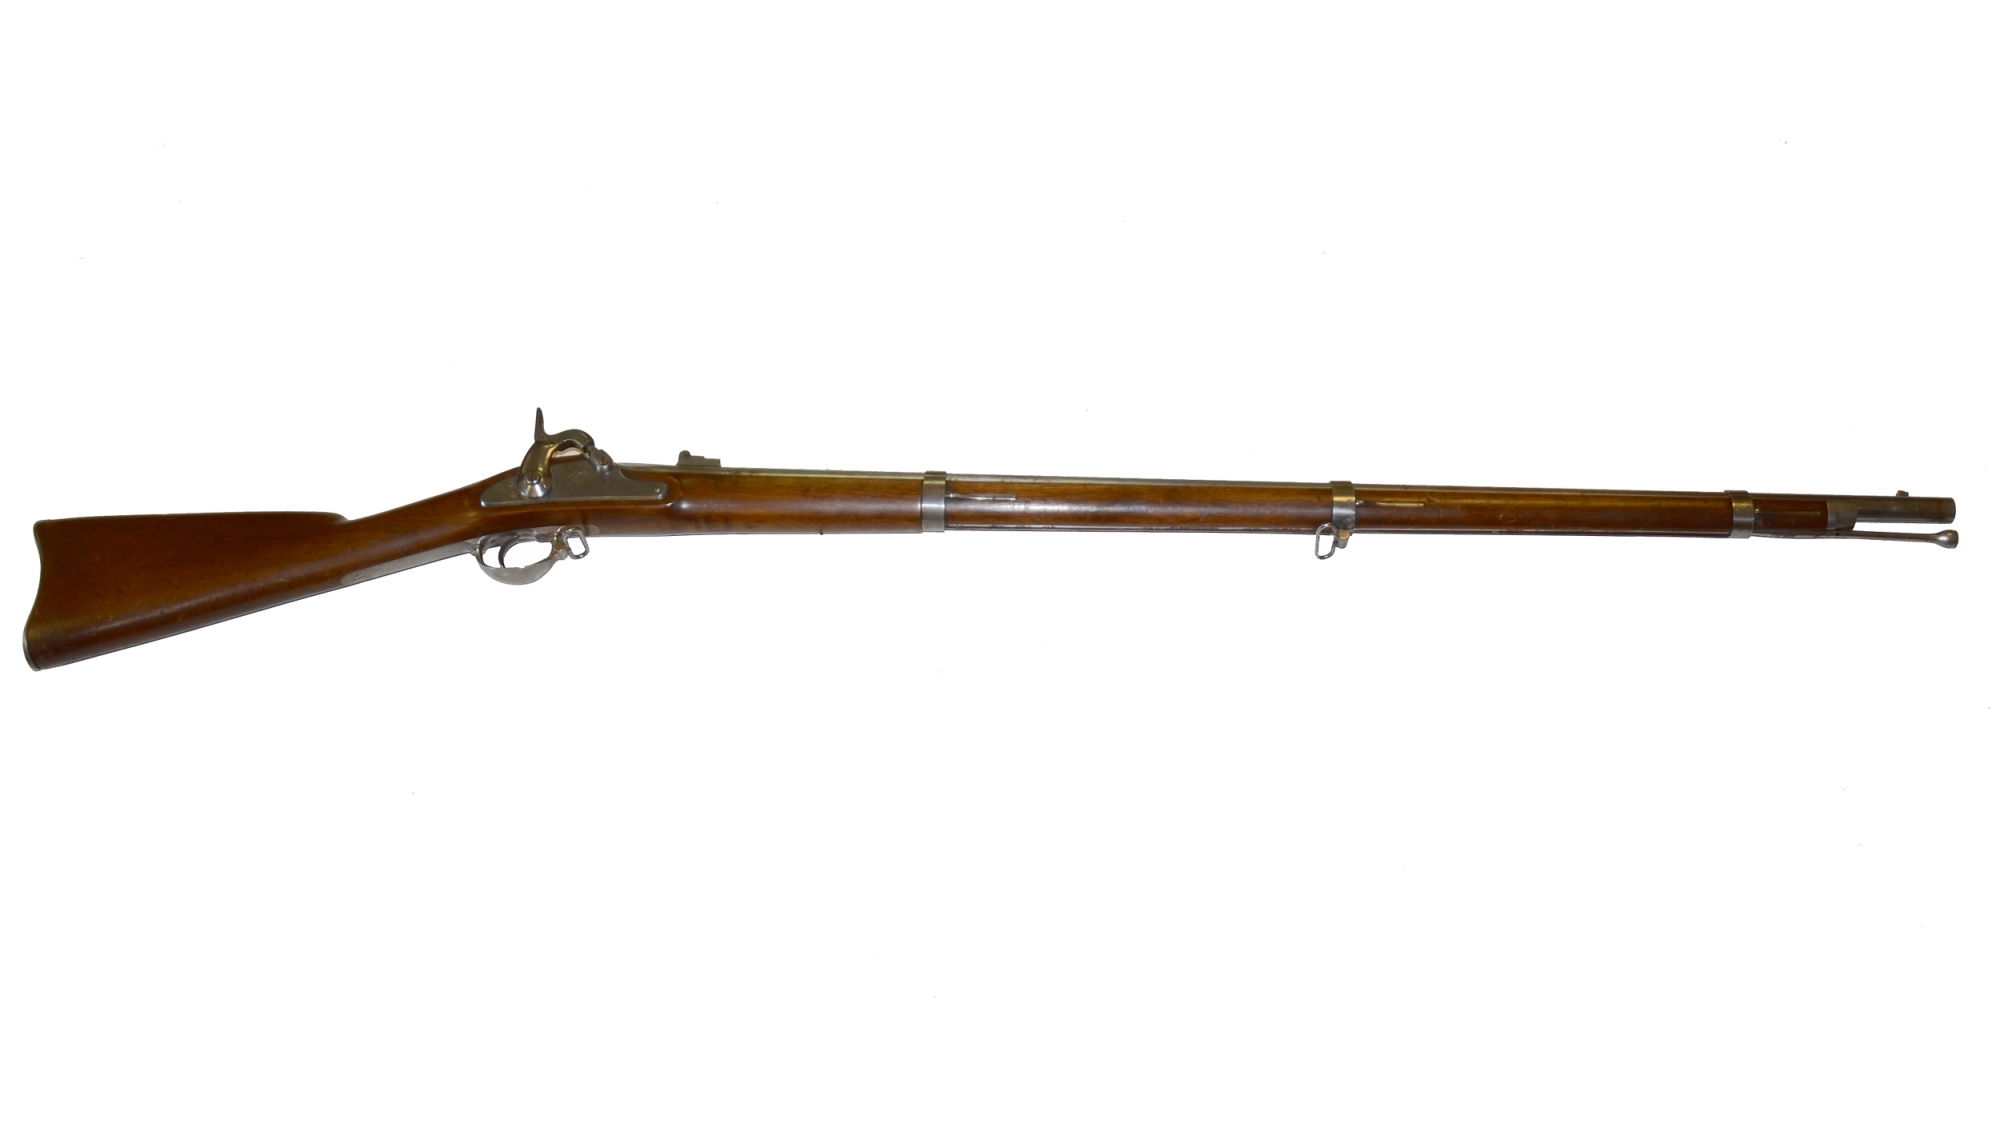 MODEL 1861 U.S. PERCUSSION RIFLE - MUSKET